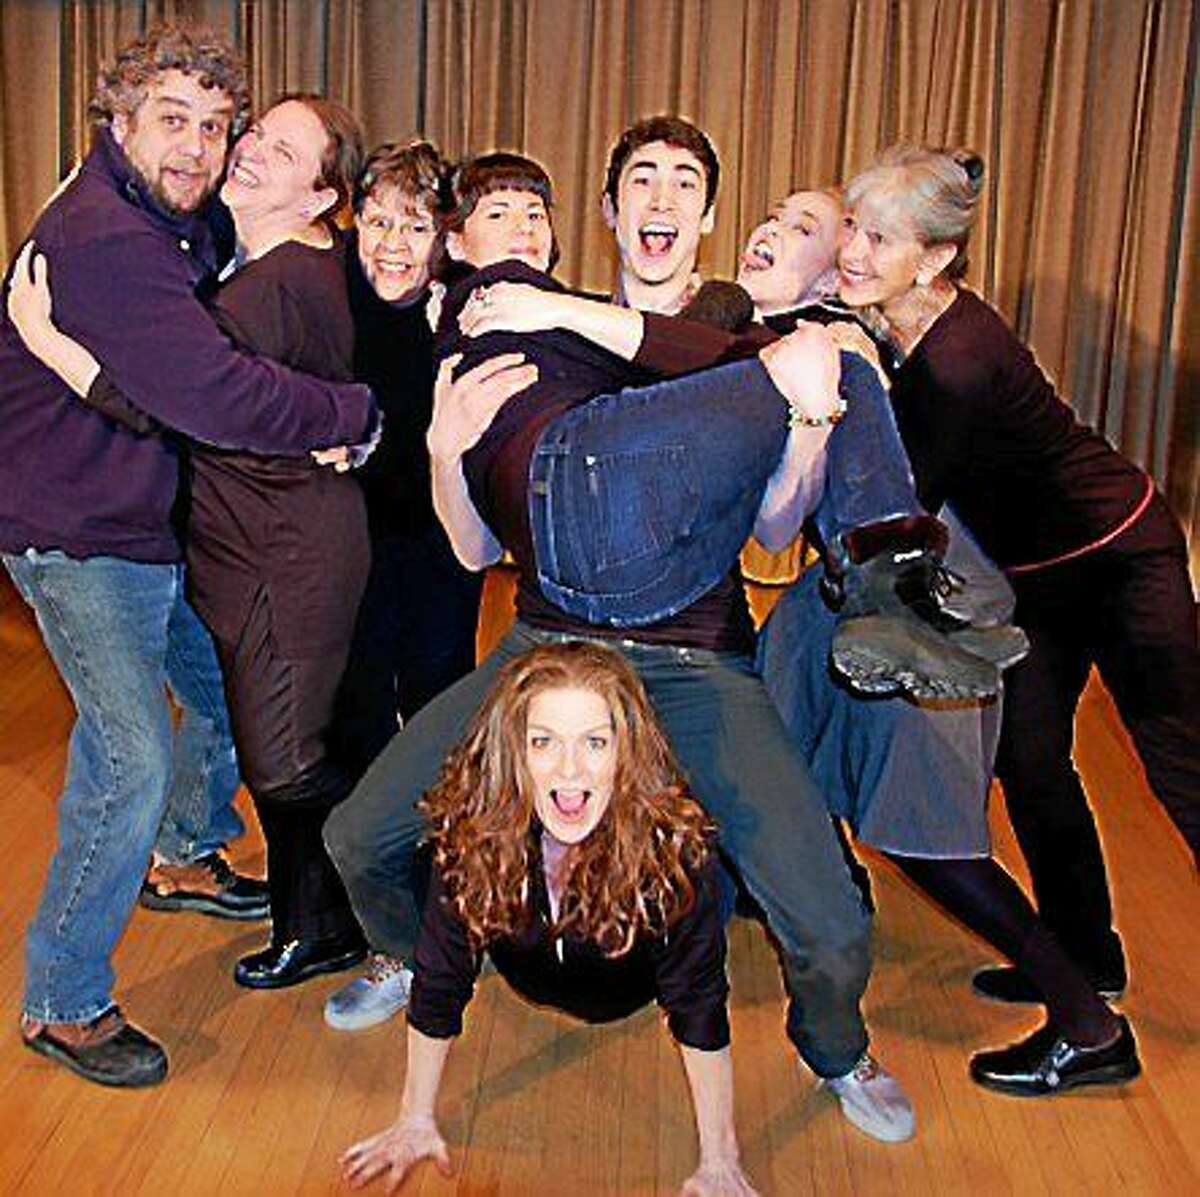 """Photo by Gerry Matthews The Ready for Anything Ensemble, stars of """"You Can't Be Serious!"""" by Terri Klein, directed by Jenny Hawkins Lecce. Pictured are Dalton Ahern, Bryn Berg, Anne Cassady, Kathy Digges Karen Gagliardi, Terri Klein, Robb Koehler, and Hilary Weissberg. Not pictured: Terri D'Arcangelo and Tony Palmieri."""